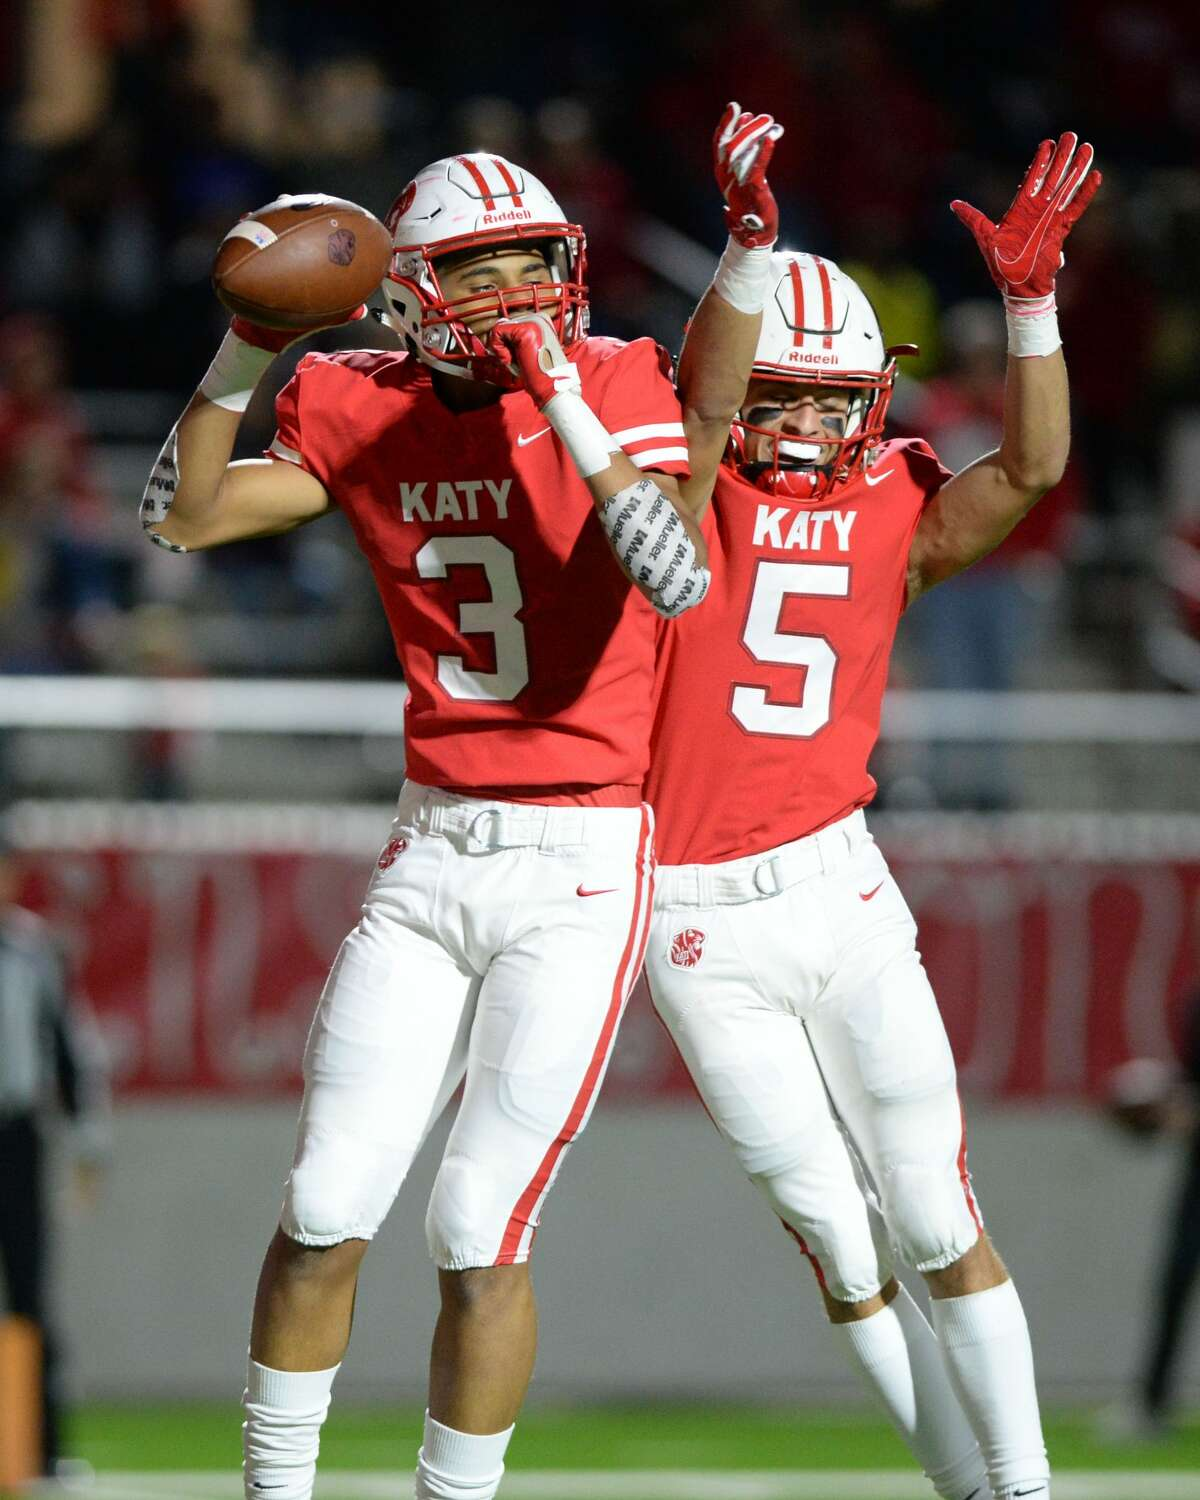 CJ Baskerville (3) and Steven Stiles (5) of Katy celebrate a touchdown in the second quarter of a Class 6A Div. I Reg. III bi-district playoff game between the Katy Tigers and the Travis Tigers on Friday, November 16, 2018 at Legacy Stadium, Katy, TX.